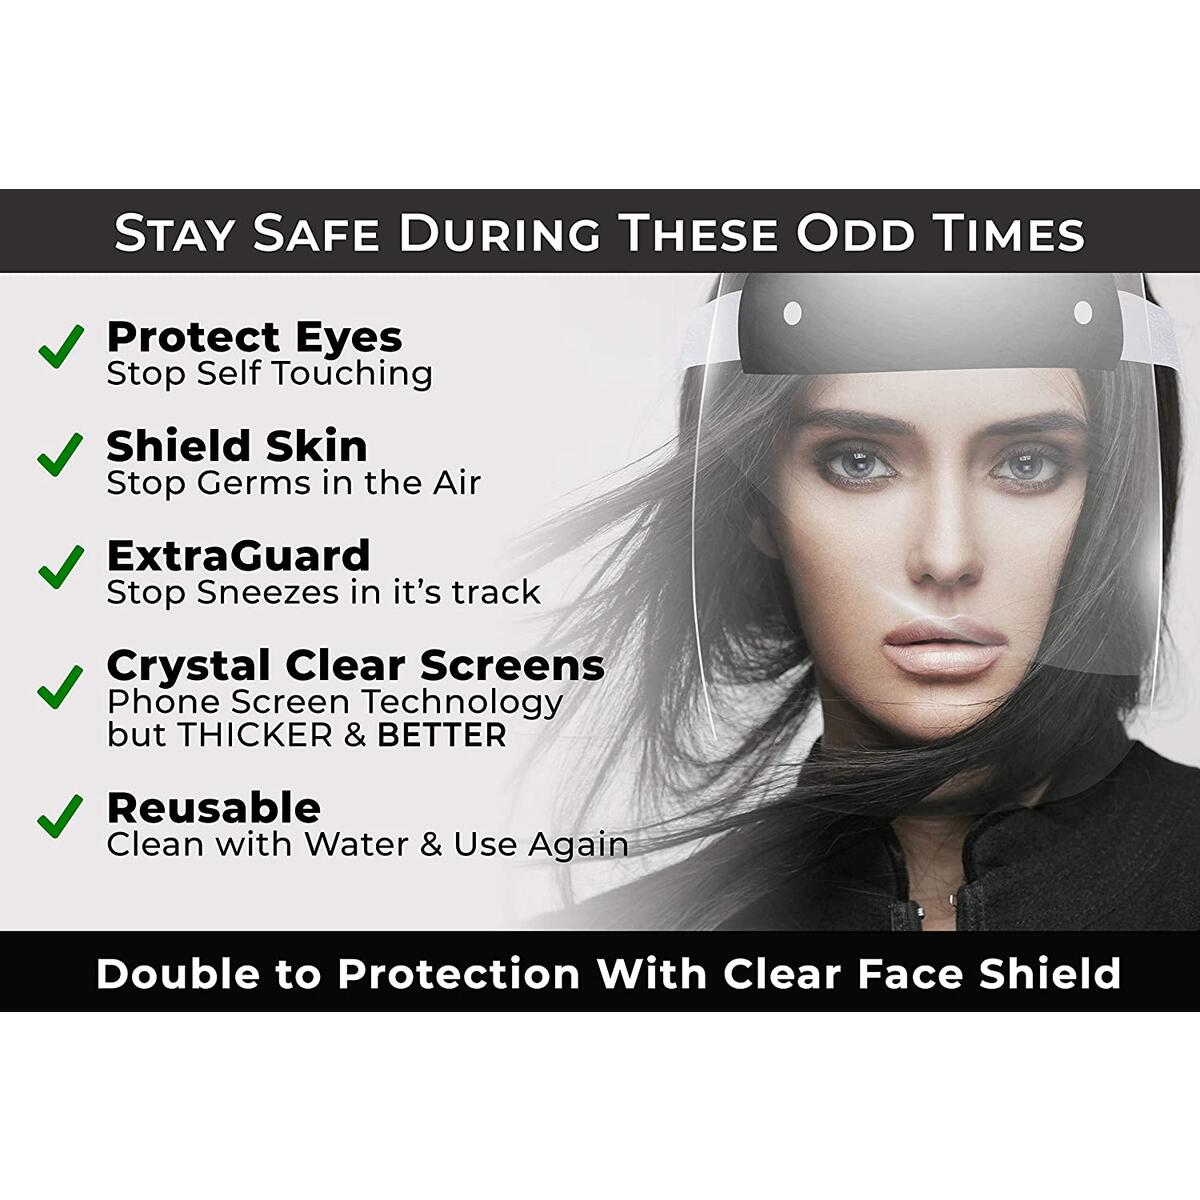 Face 𝐒𝐡𝐢𝐞𝐥𝐝 (Pack of 5) Full Face Protect Eyes - Plastic Face 𝚂𝚑𝚒𝚎𝚕𝚍 with Clear Protective Film Elastic Band and Comfort Elasticity